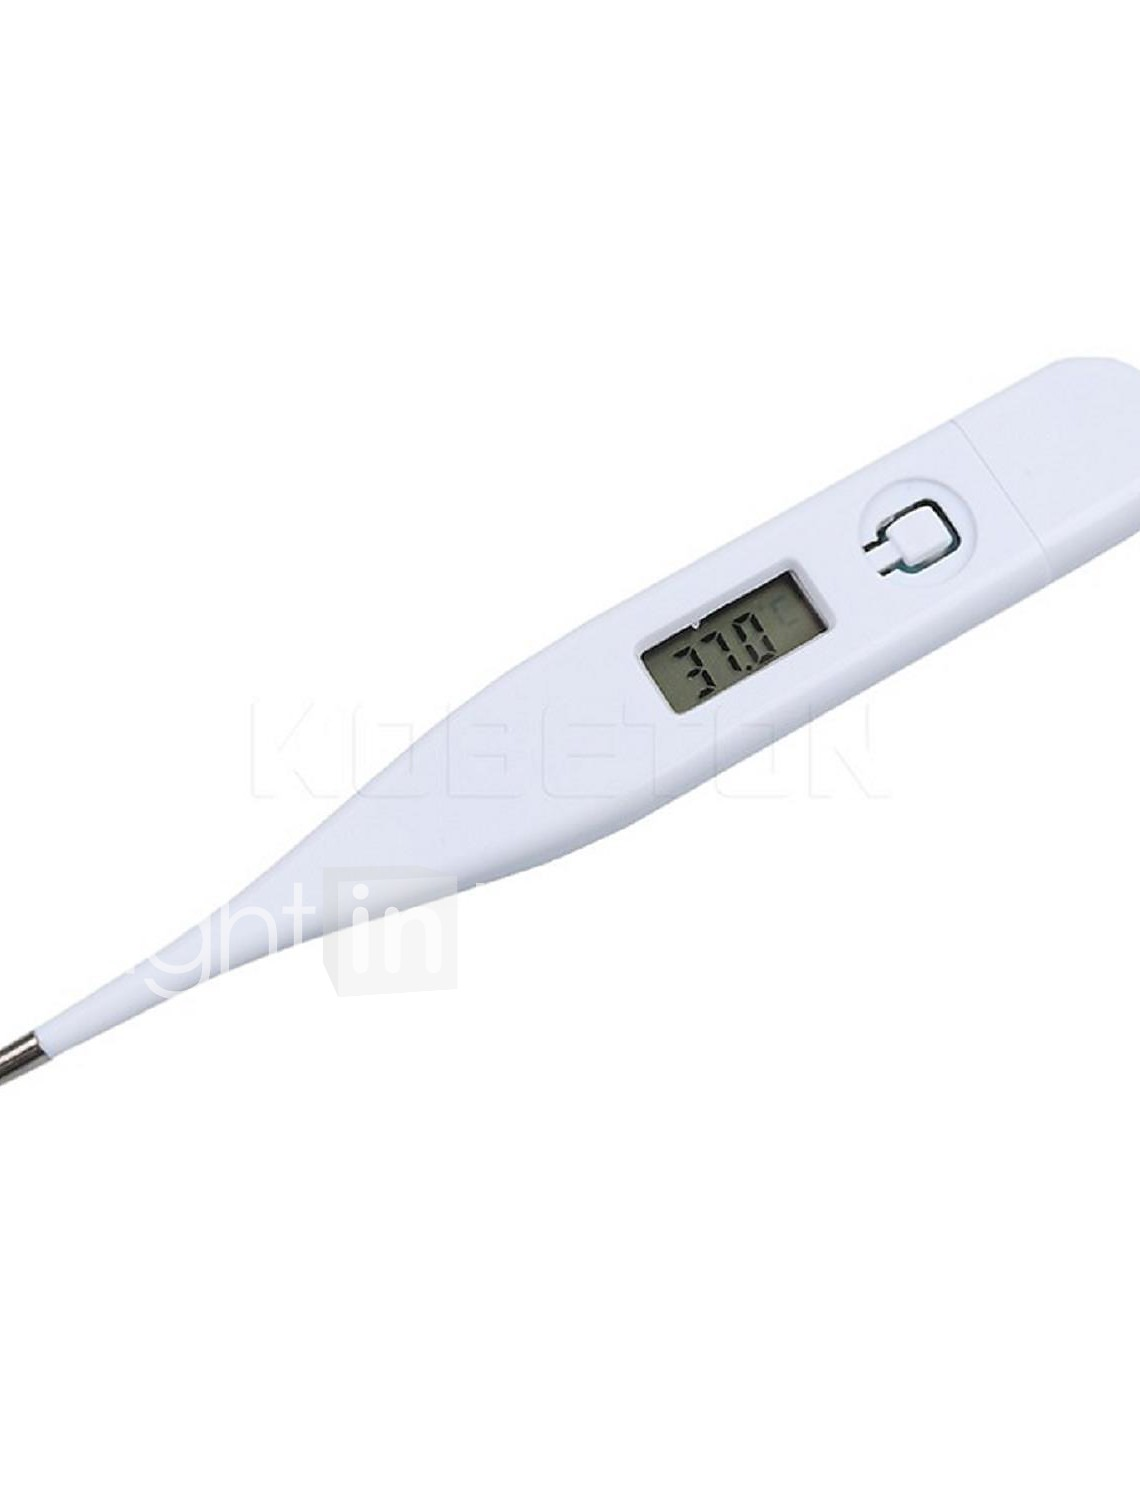 Mouth thermometer Baby Child Adult Body Digital LCD Heating Thermometer Multifunction Temperature Measurement Thermometer